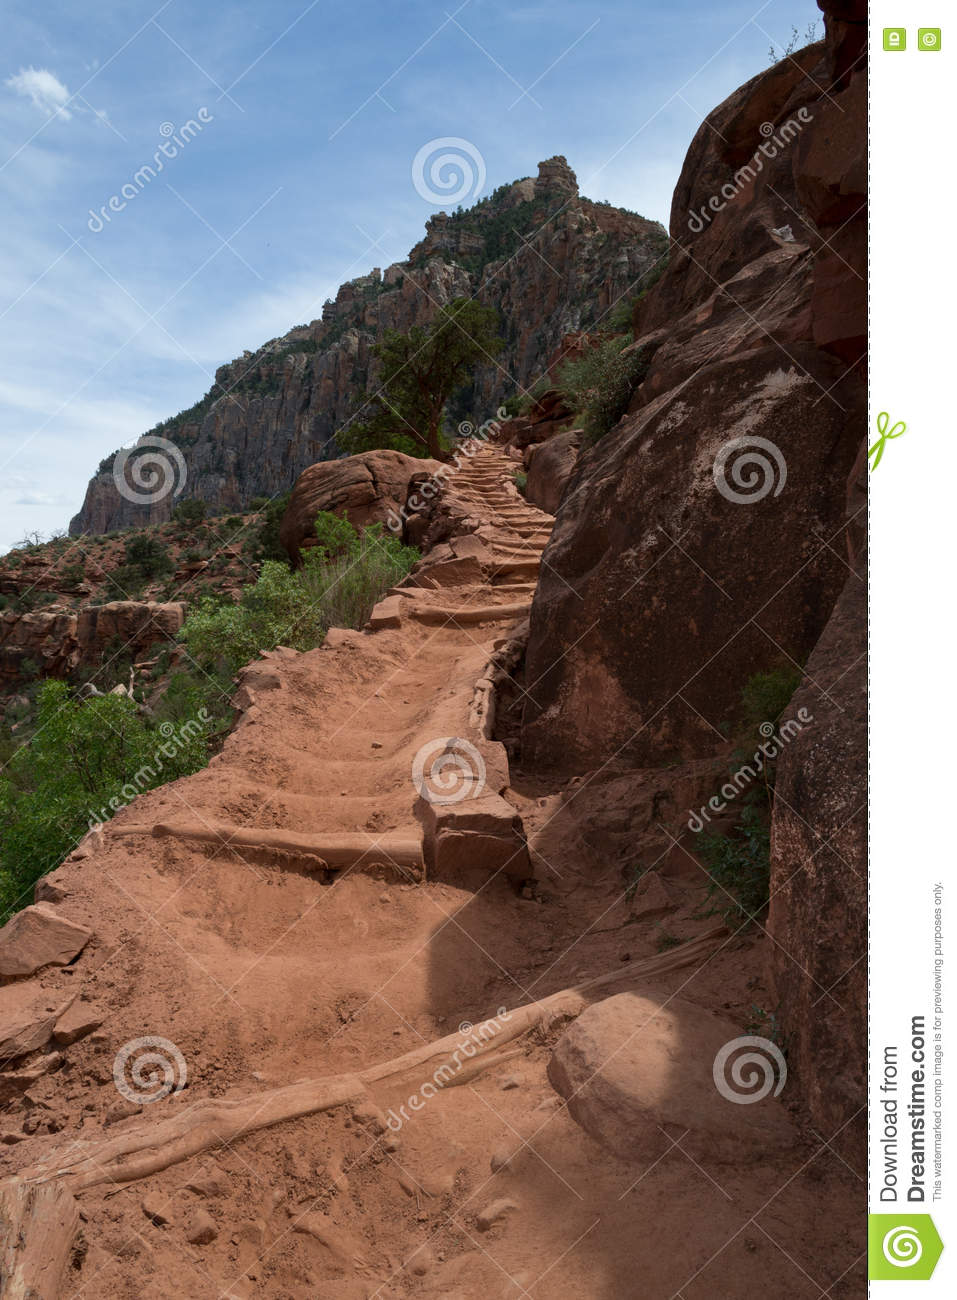 Descending the Kaibab trail